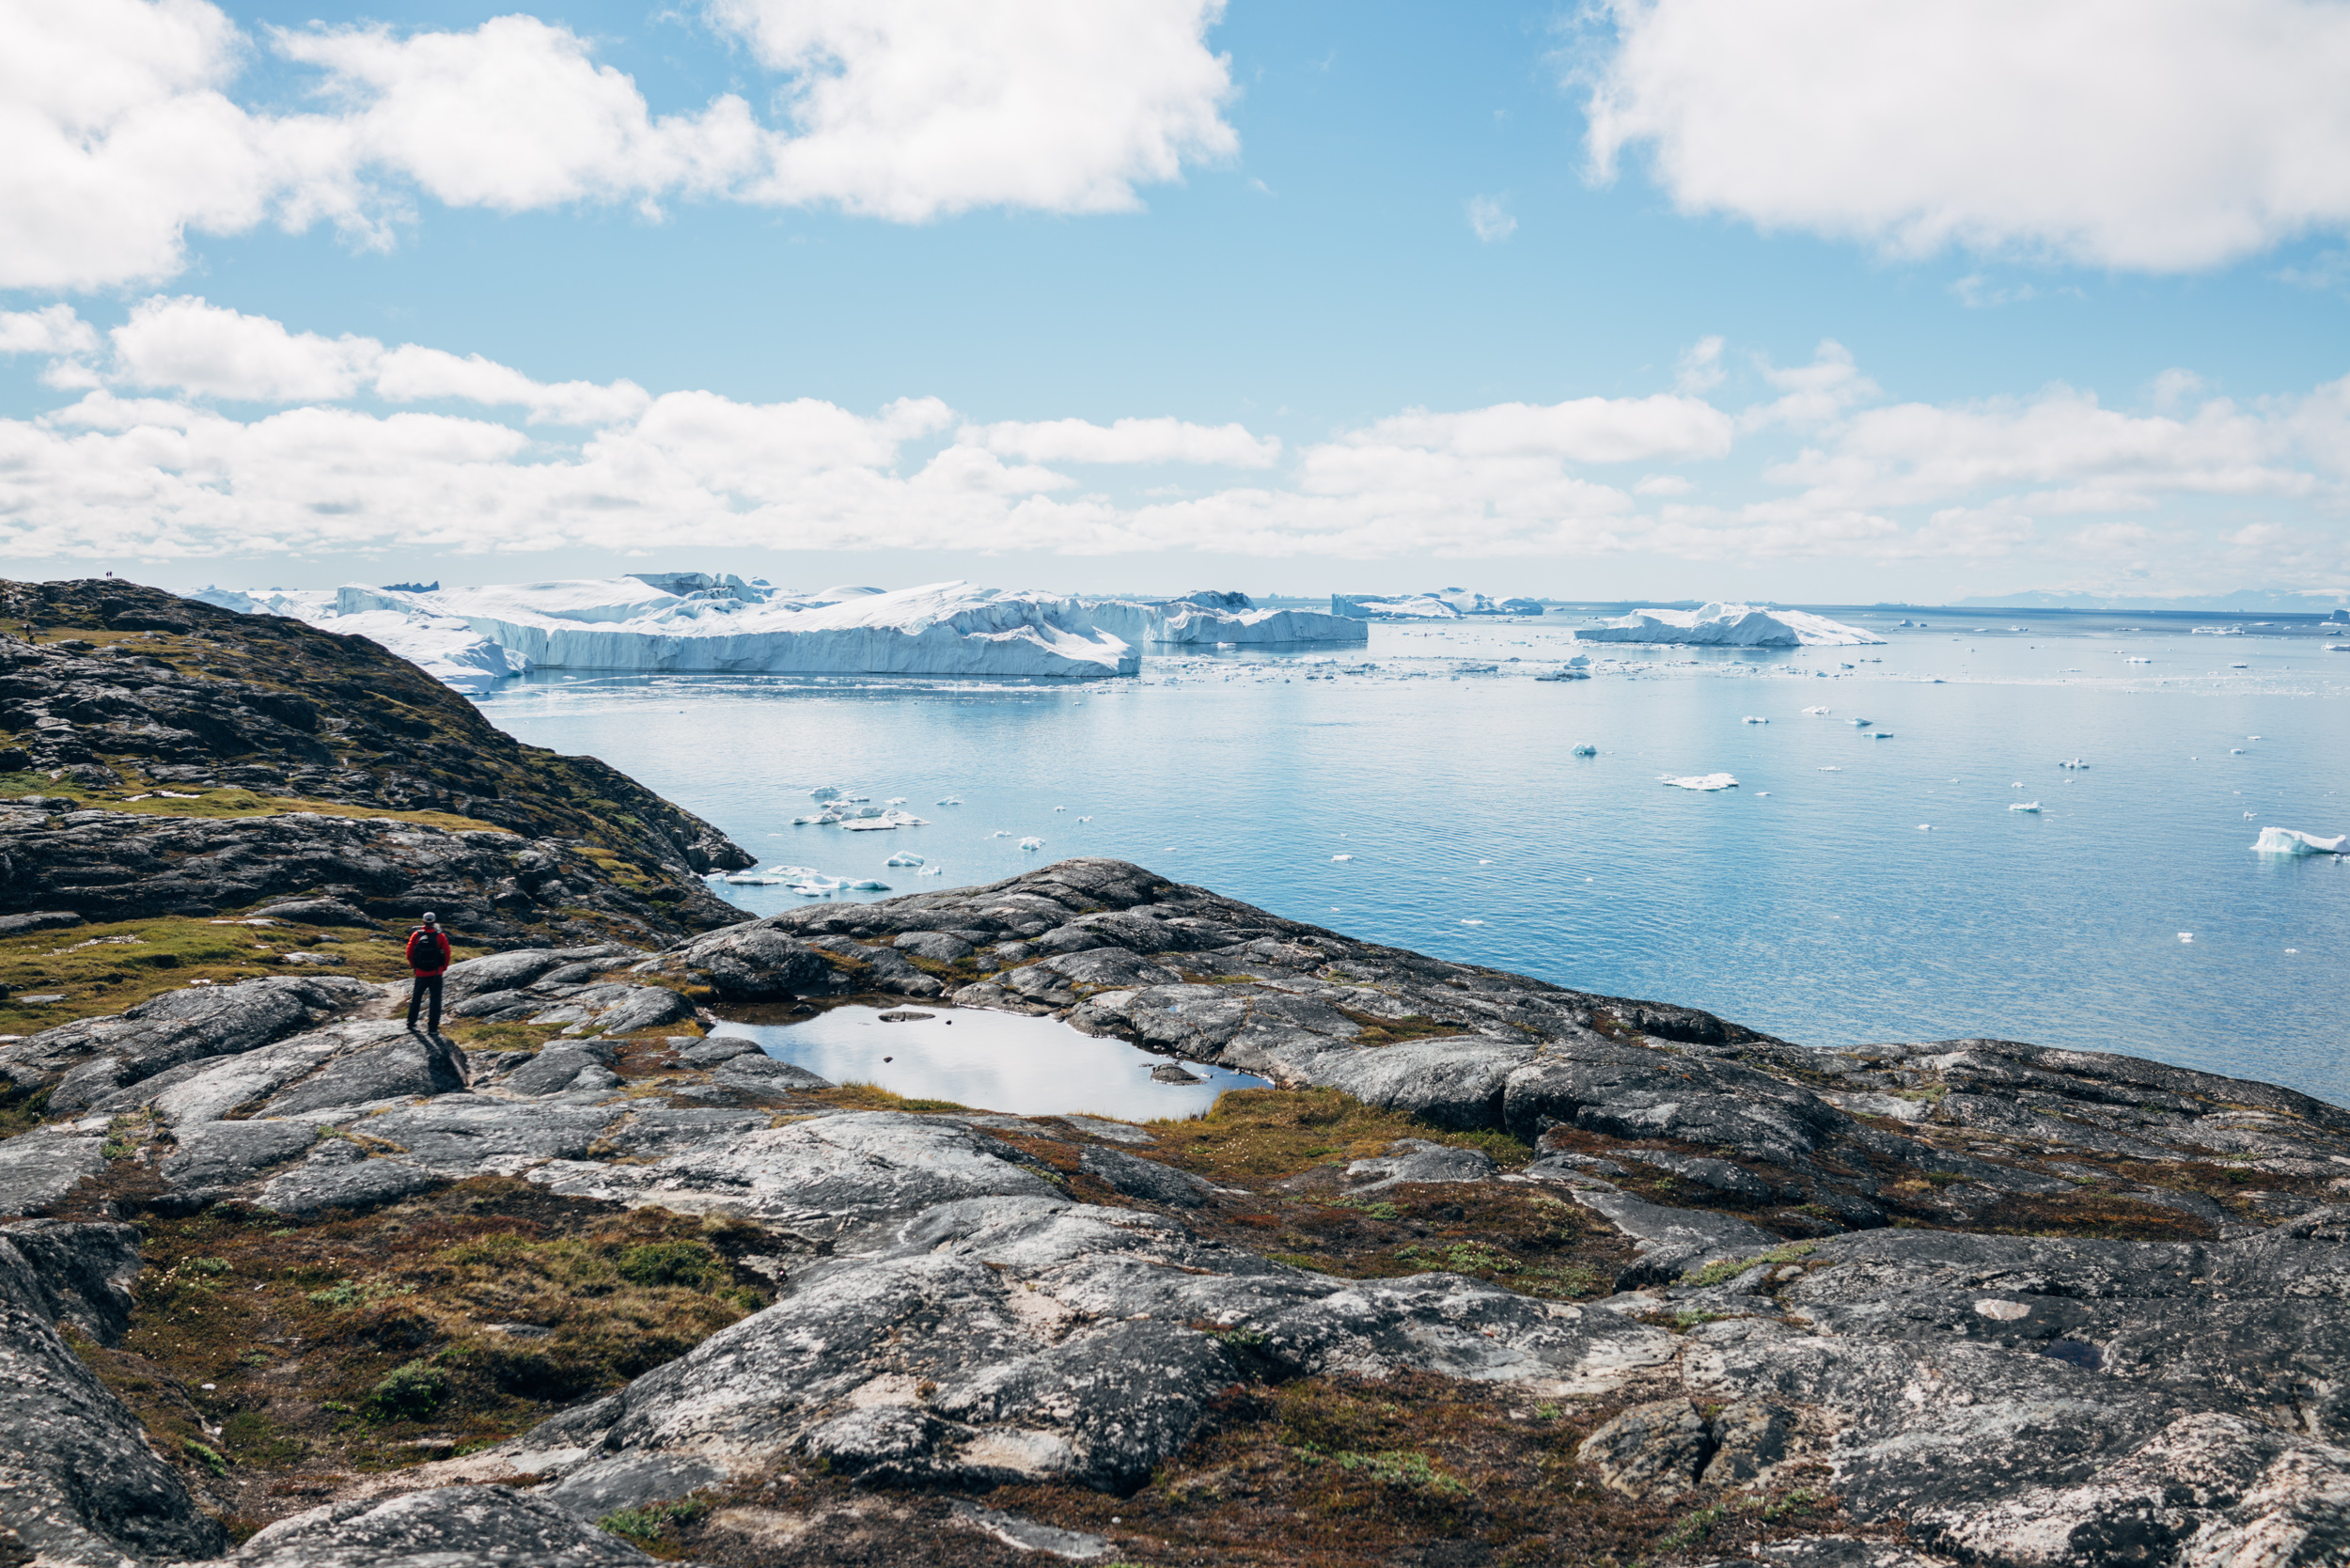 Hiking to Ilulissat's main attraction, the Icefiord